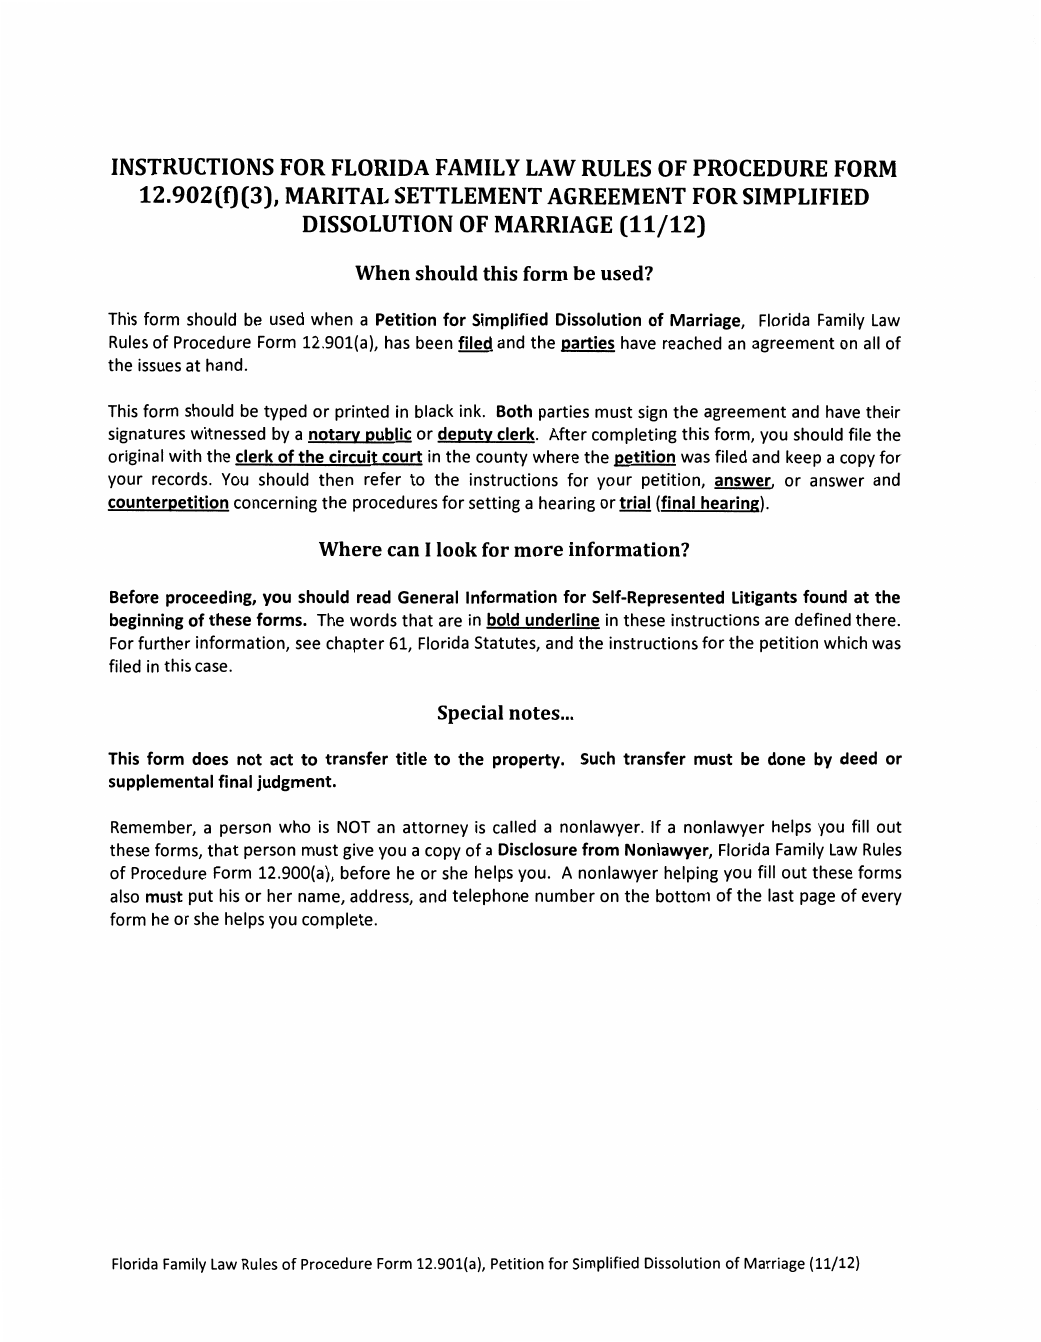 Marital Settlement Agreement For Simplified Dissolution Of Marriage